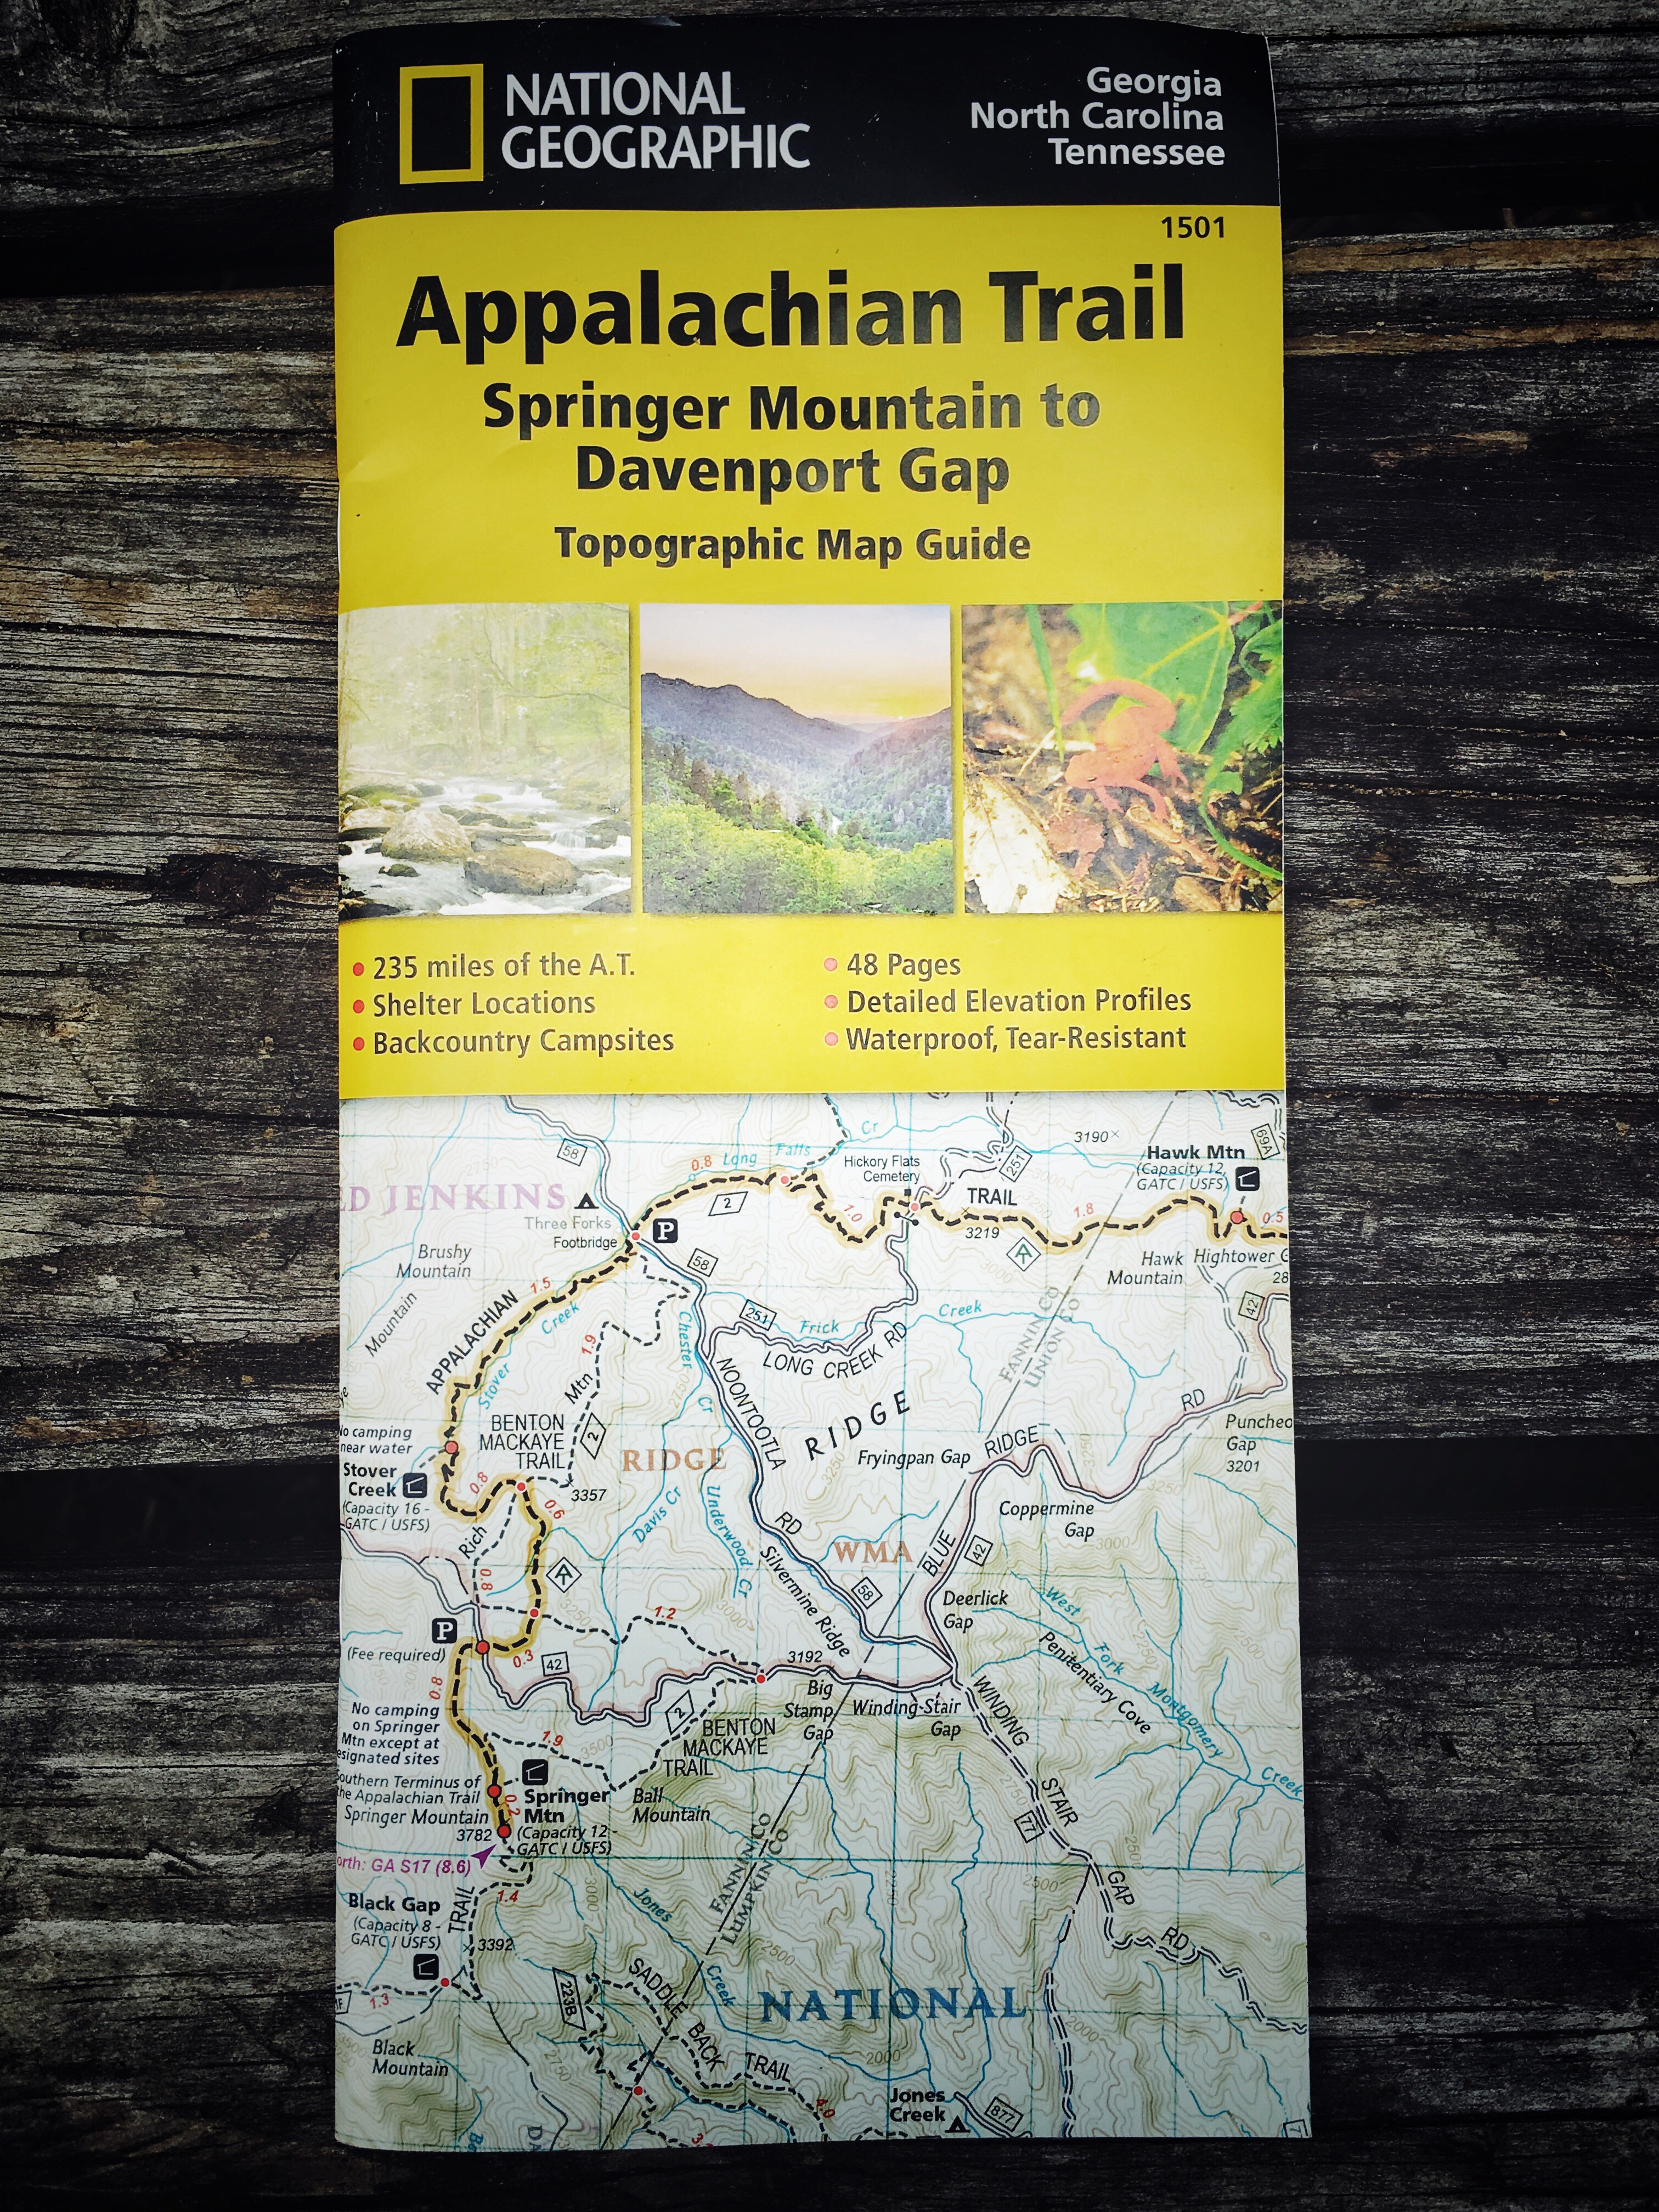 National Geographic Appalachian Trail Maps Review - Hike & Tell